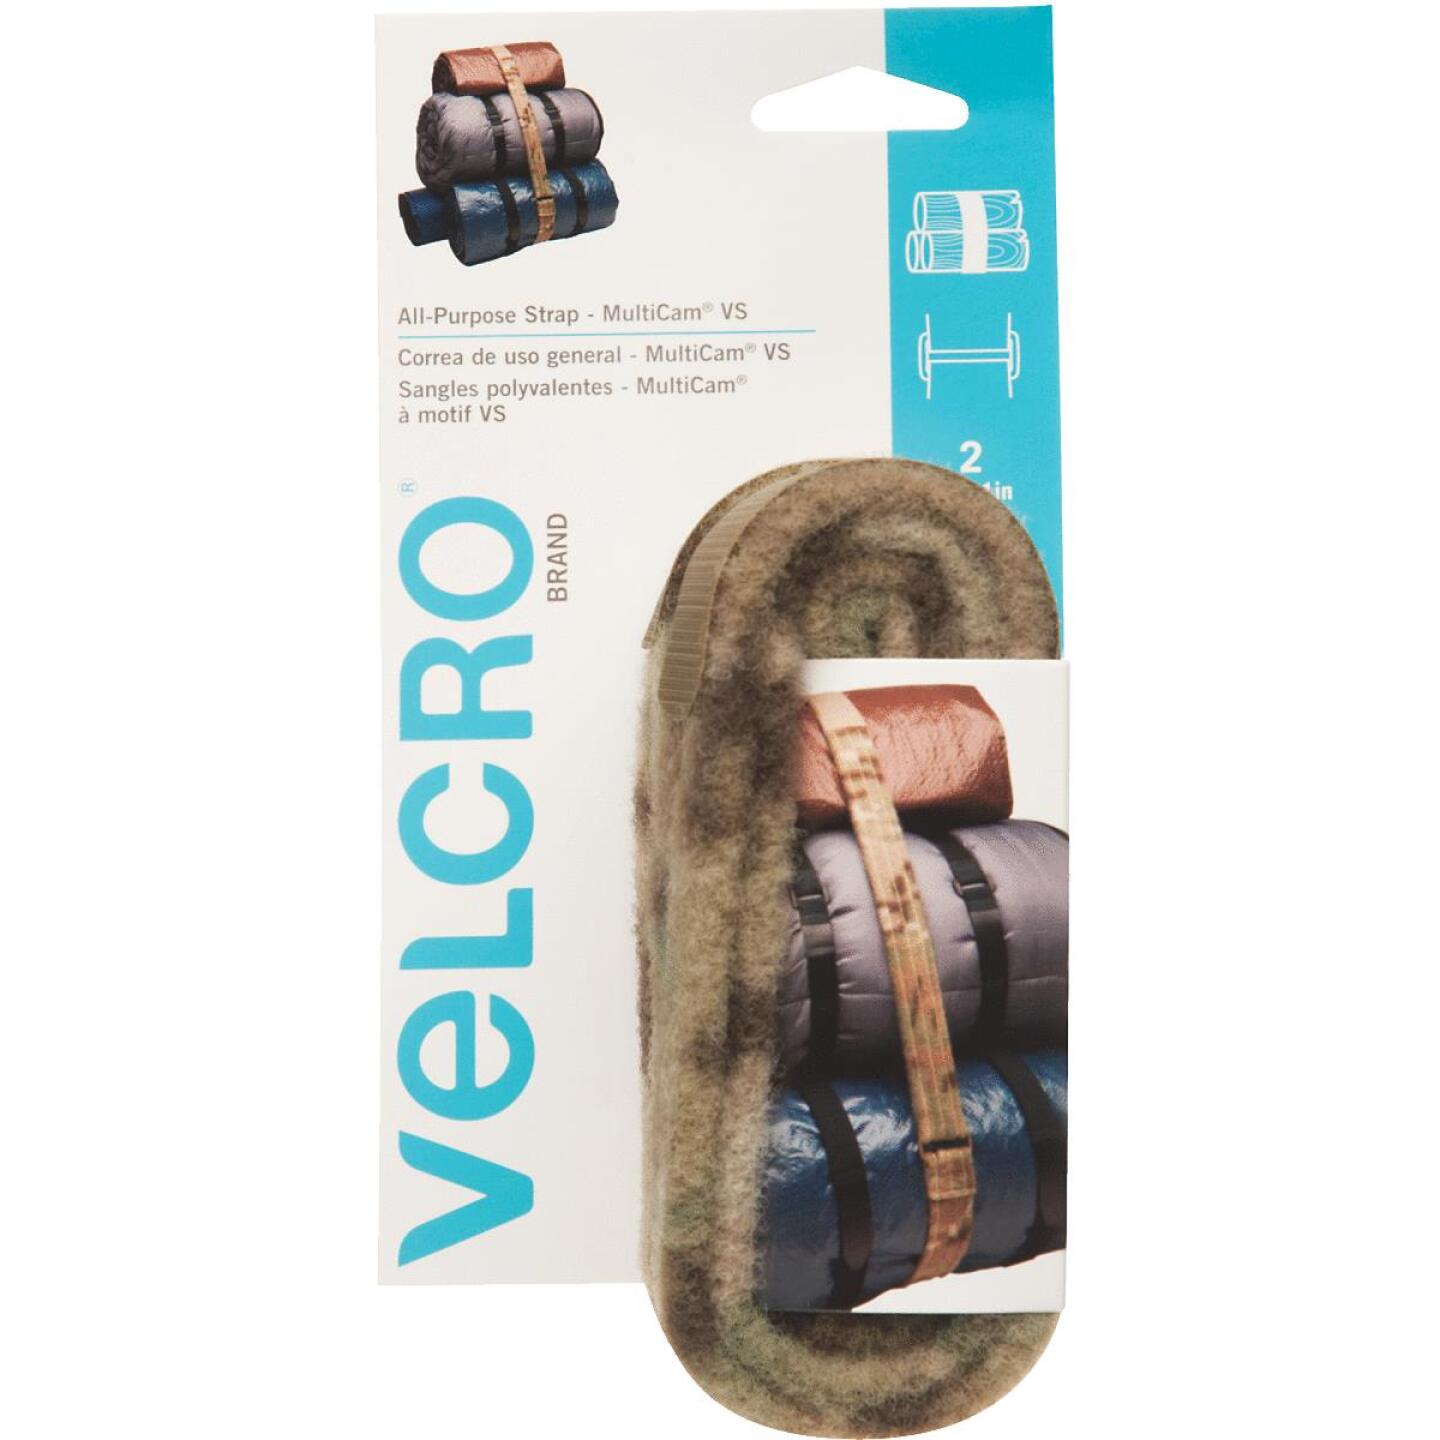 VELCRO Brand Camouflage 4 Ft. All Purpose Tie Down Strap Image 1